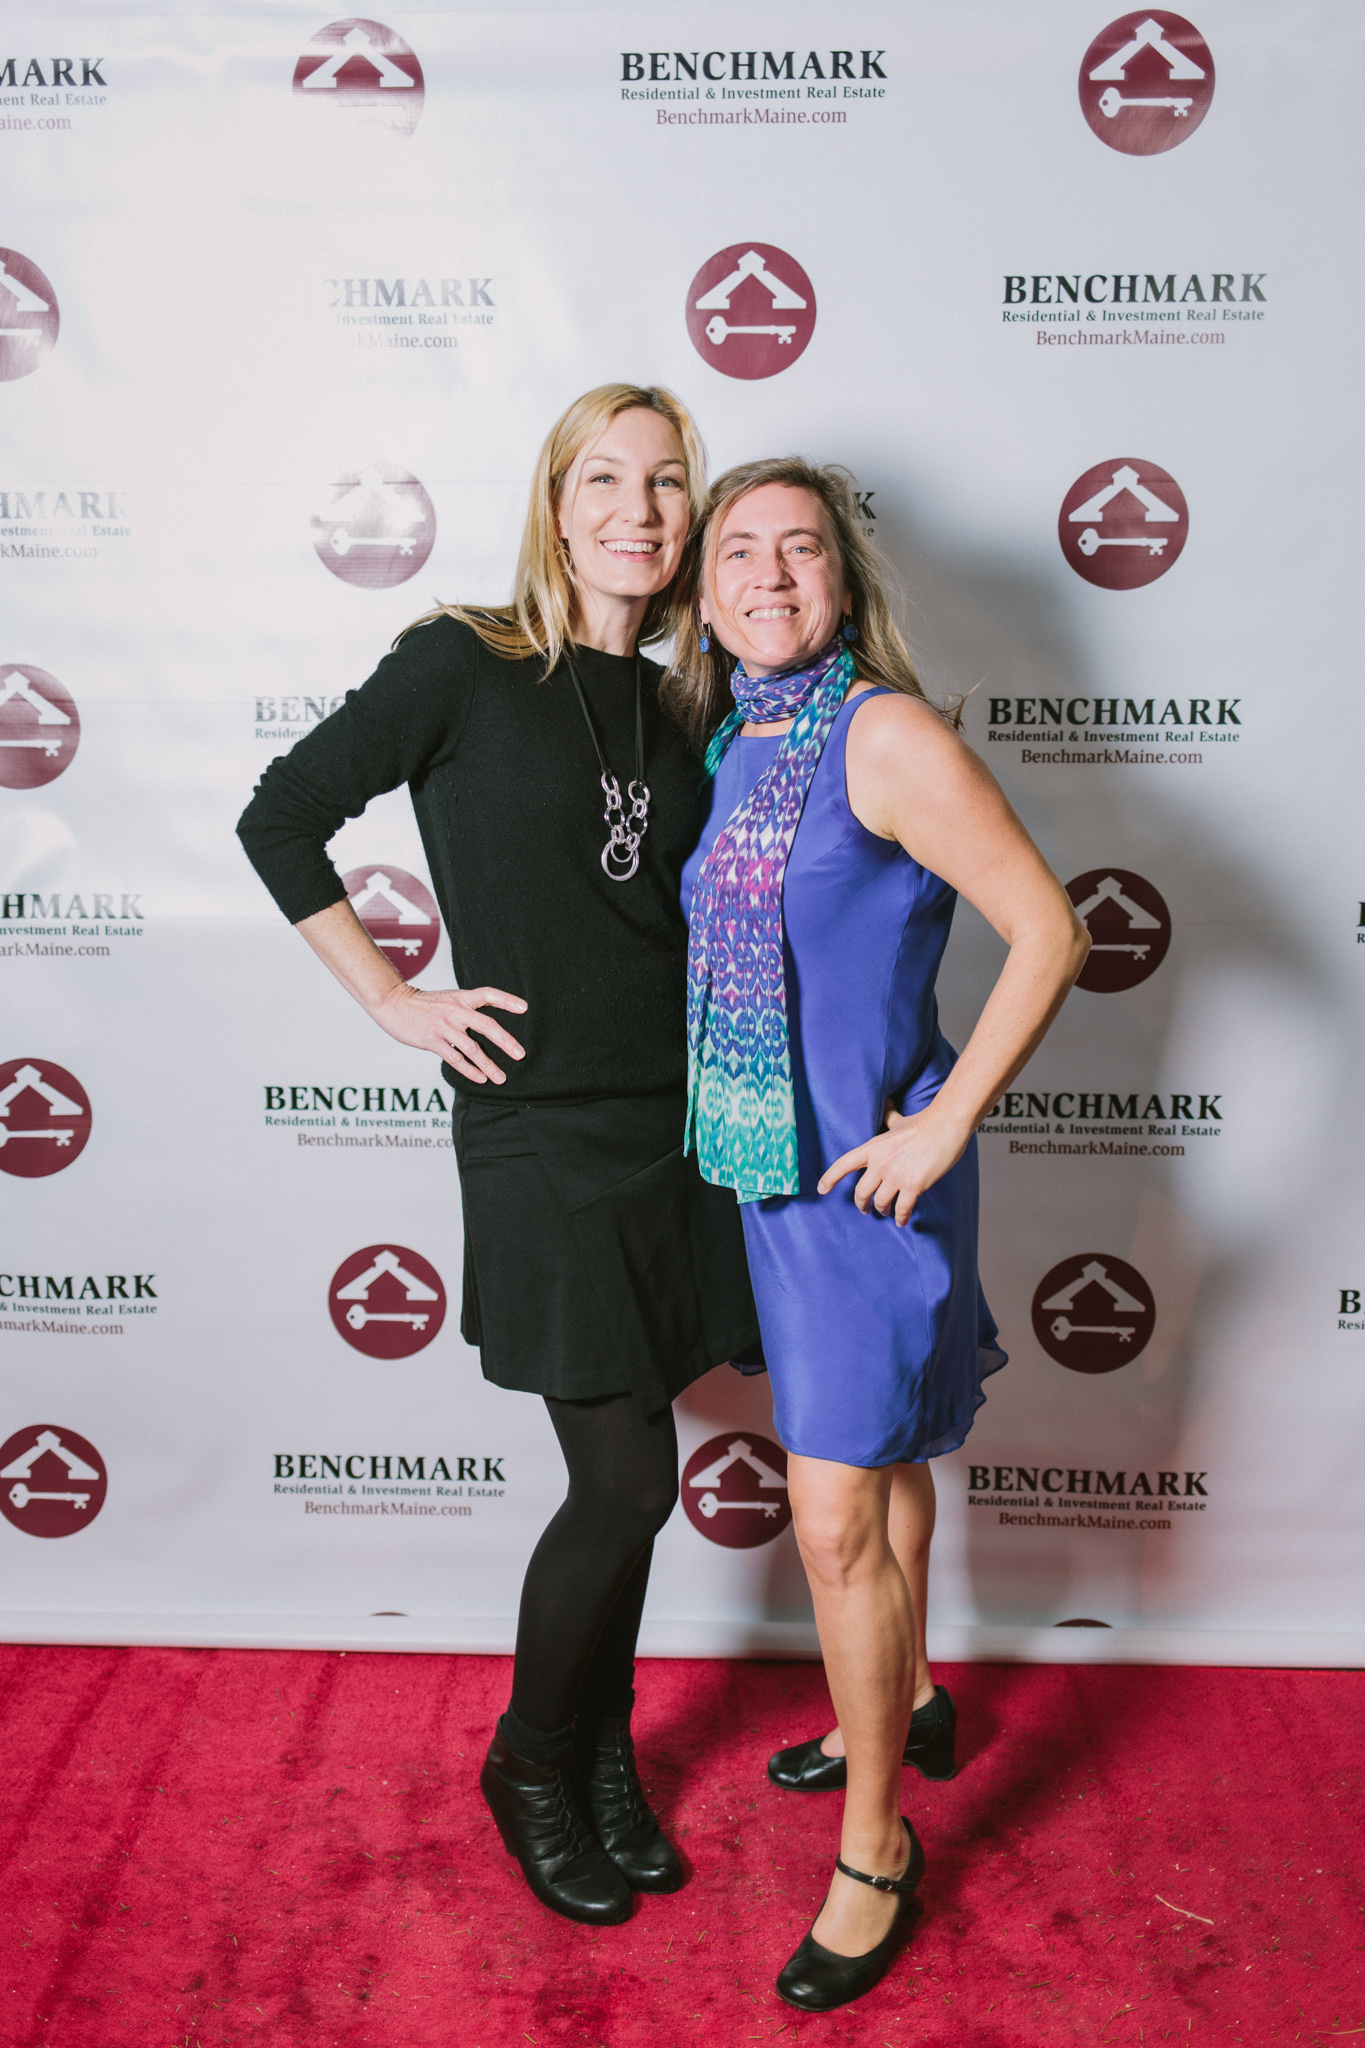 Benchmark_Holiday_Party_SR-060.jpg